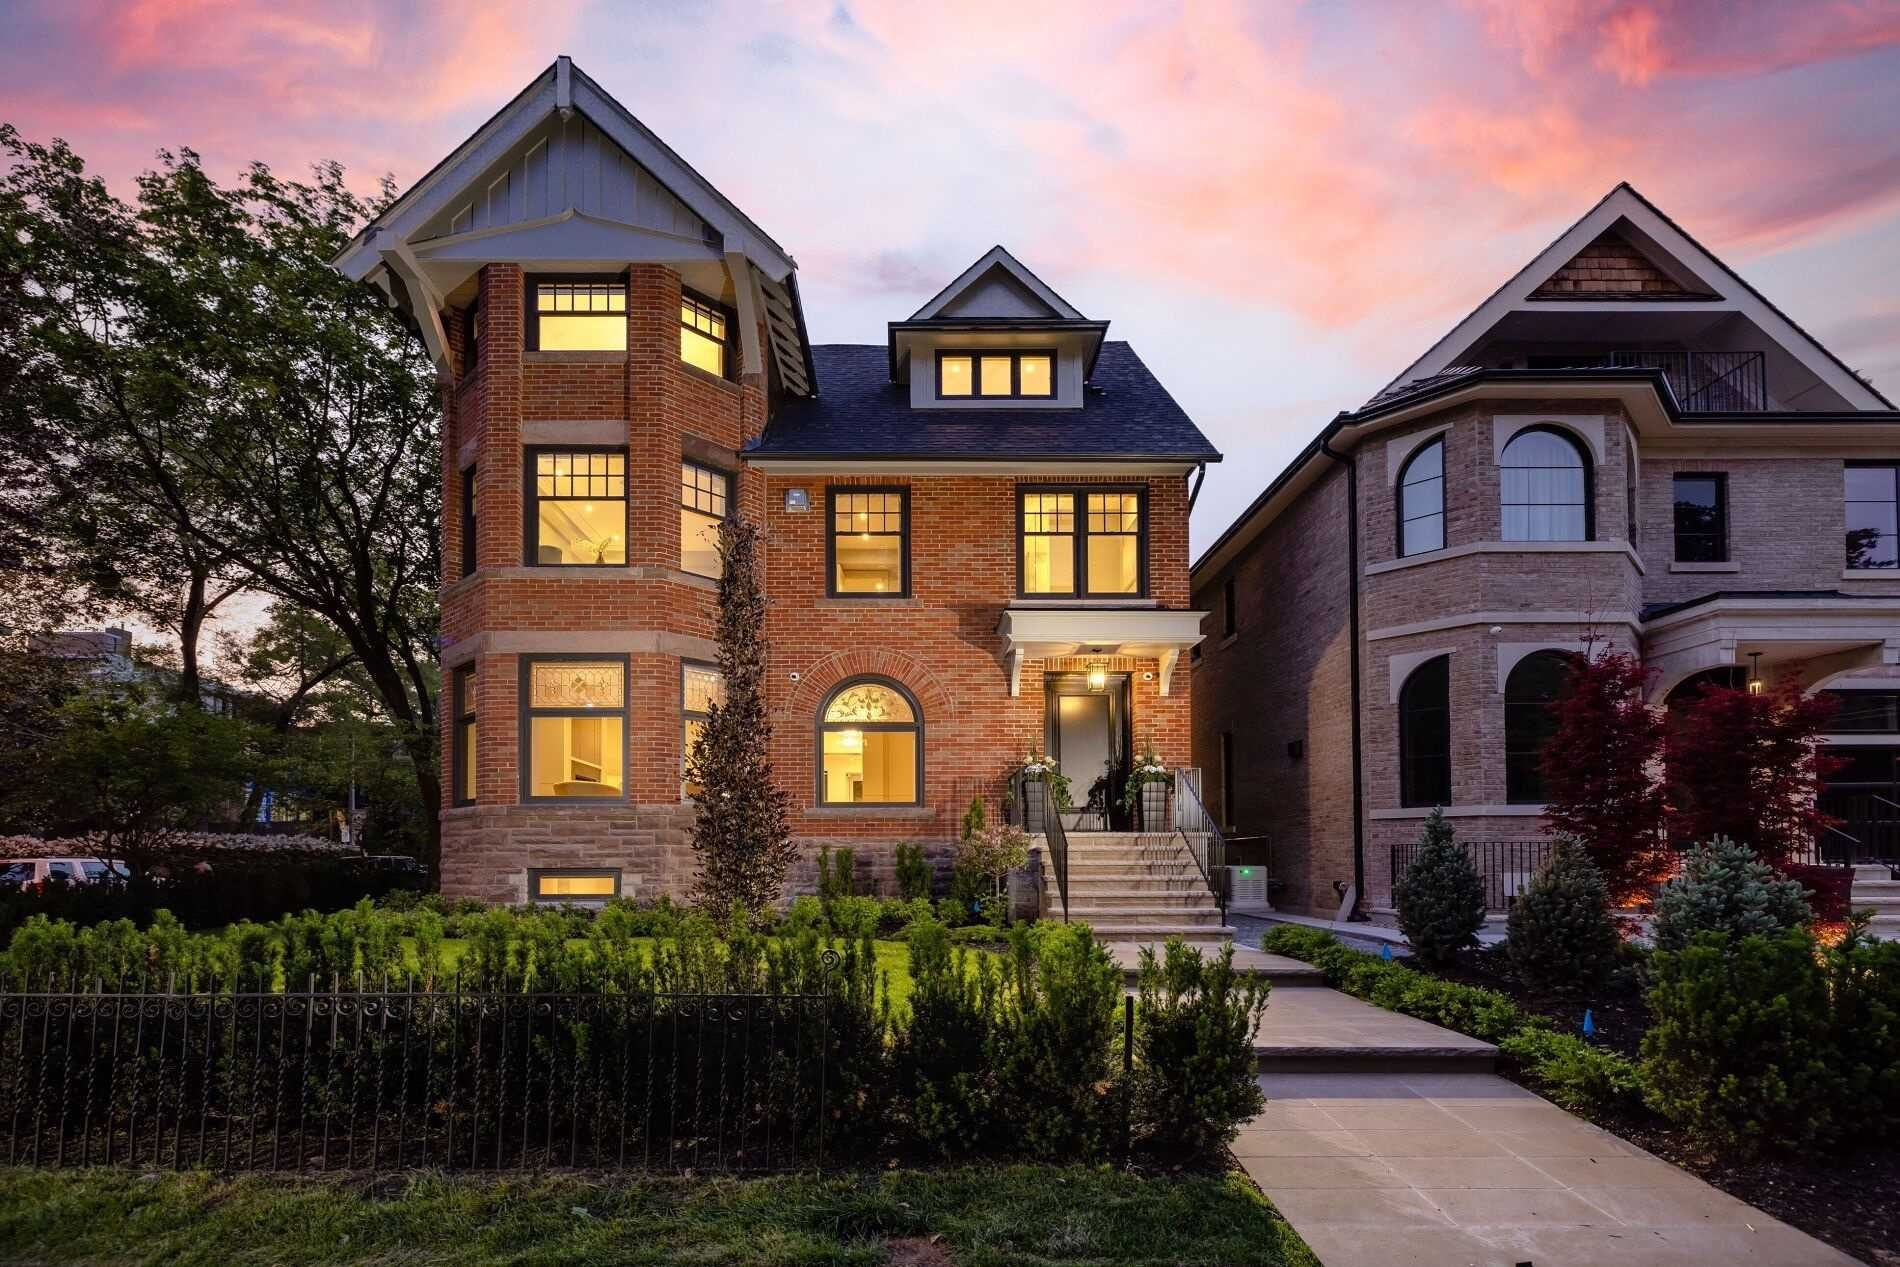 Main Photo: 70 Lowther Avenue in Toronto: Annex House (3-Storey) for sale (Toronto C02)  : MLS®# C5365768